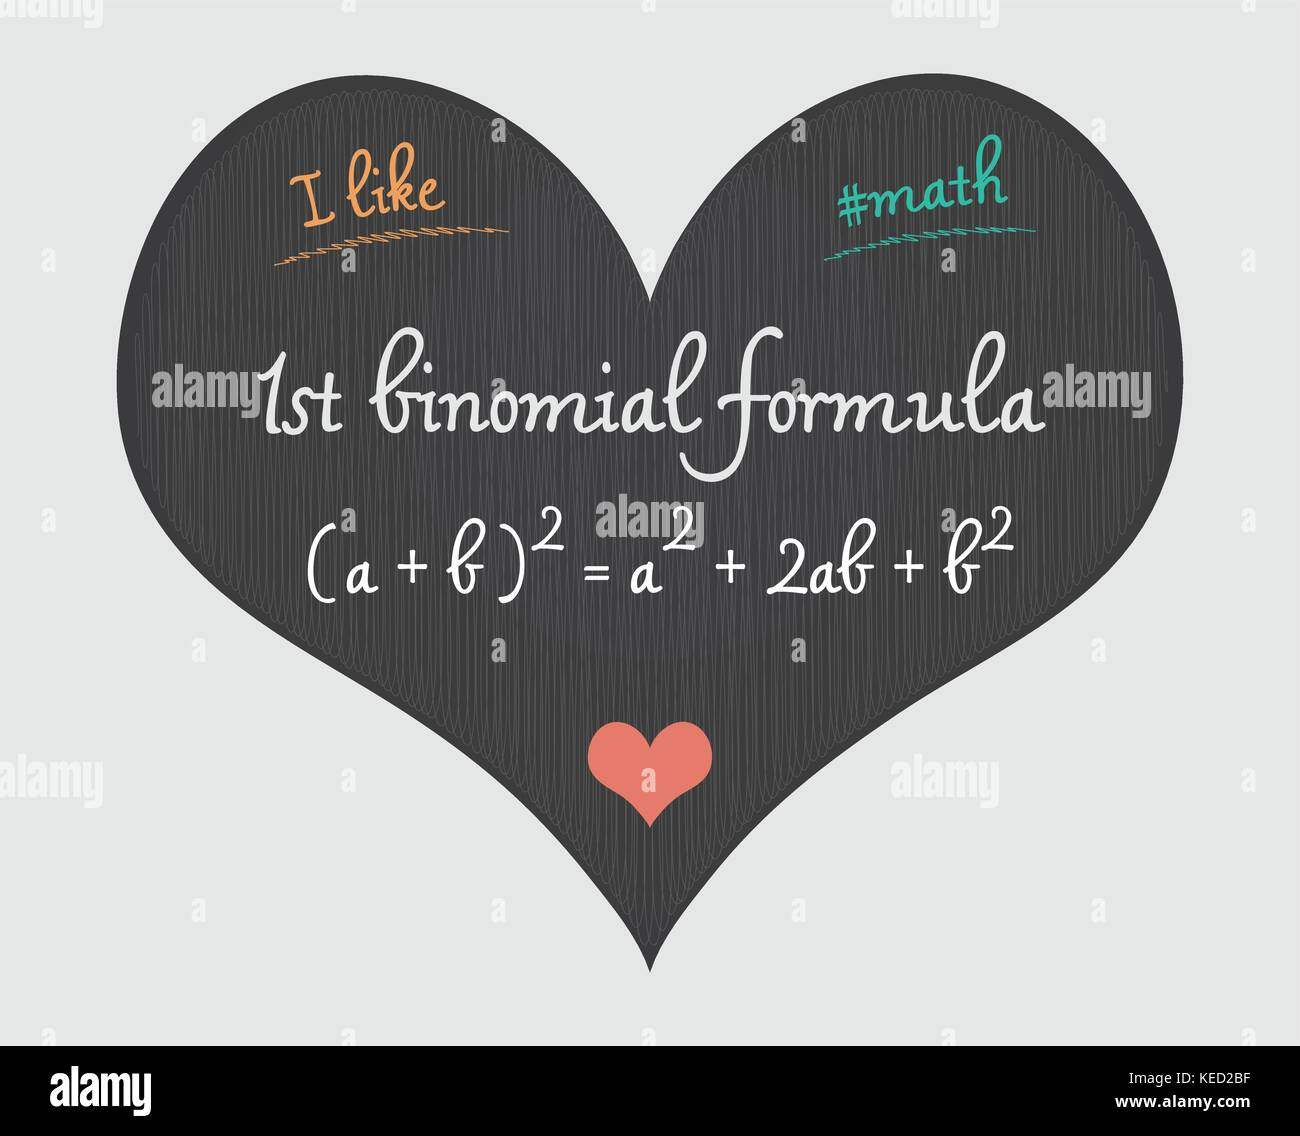 1st binomial formula - I like math illustration - Stock Vector